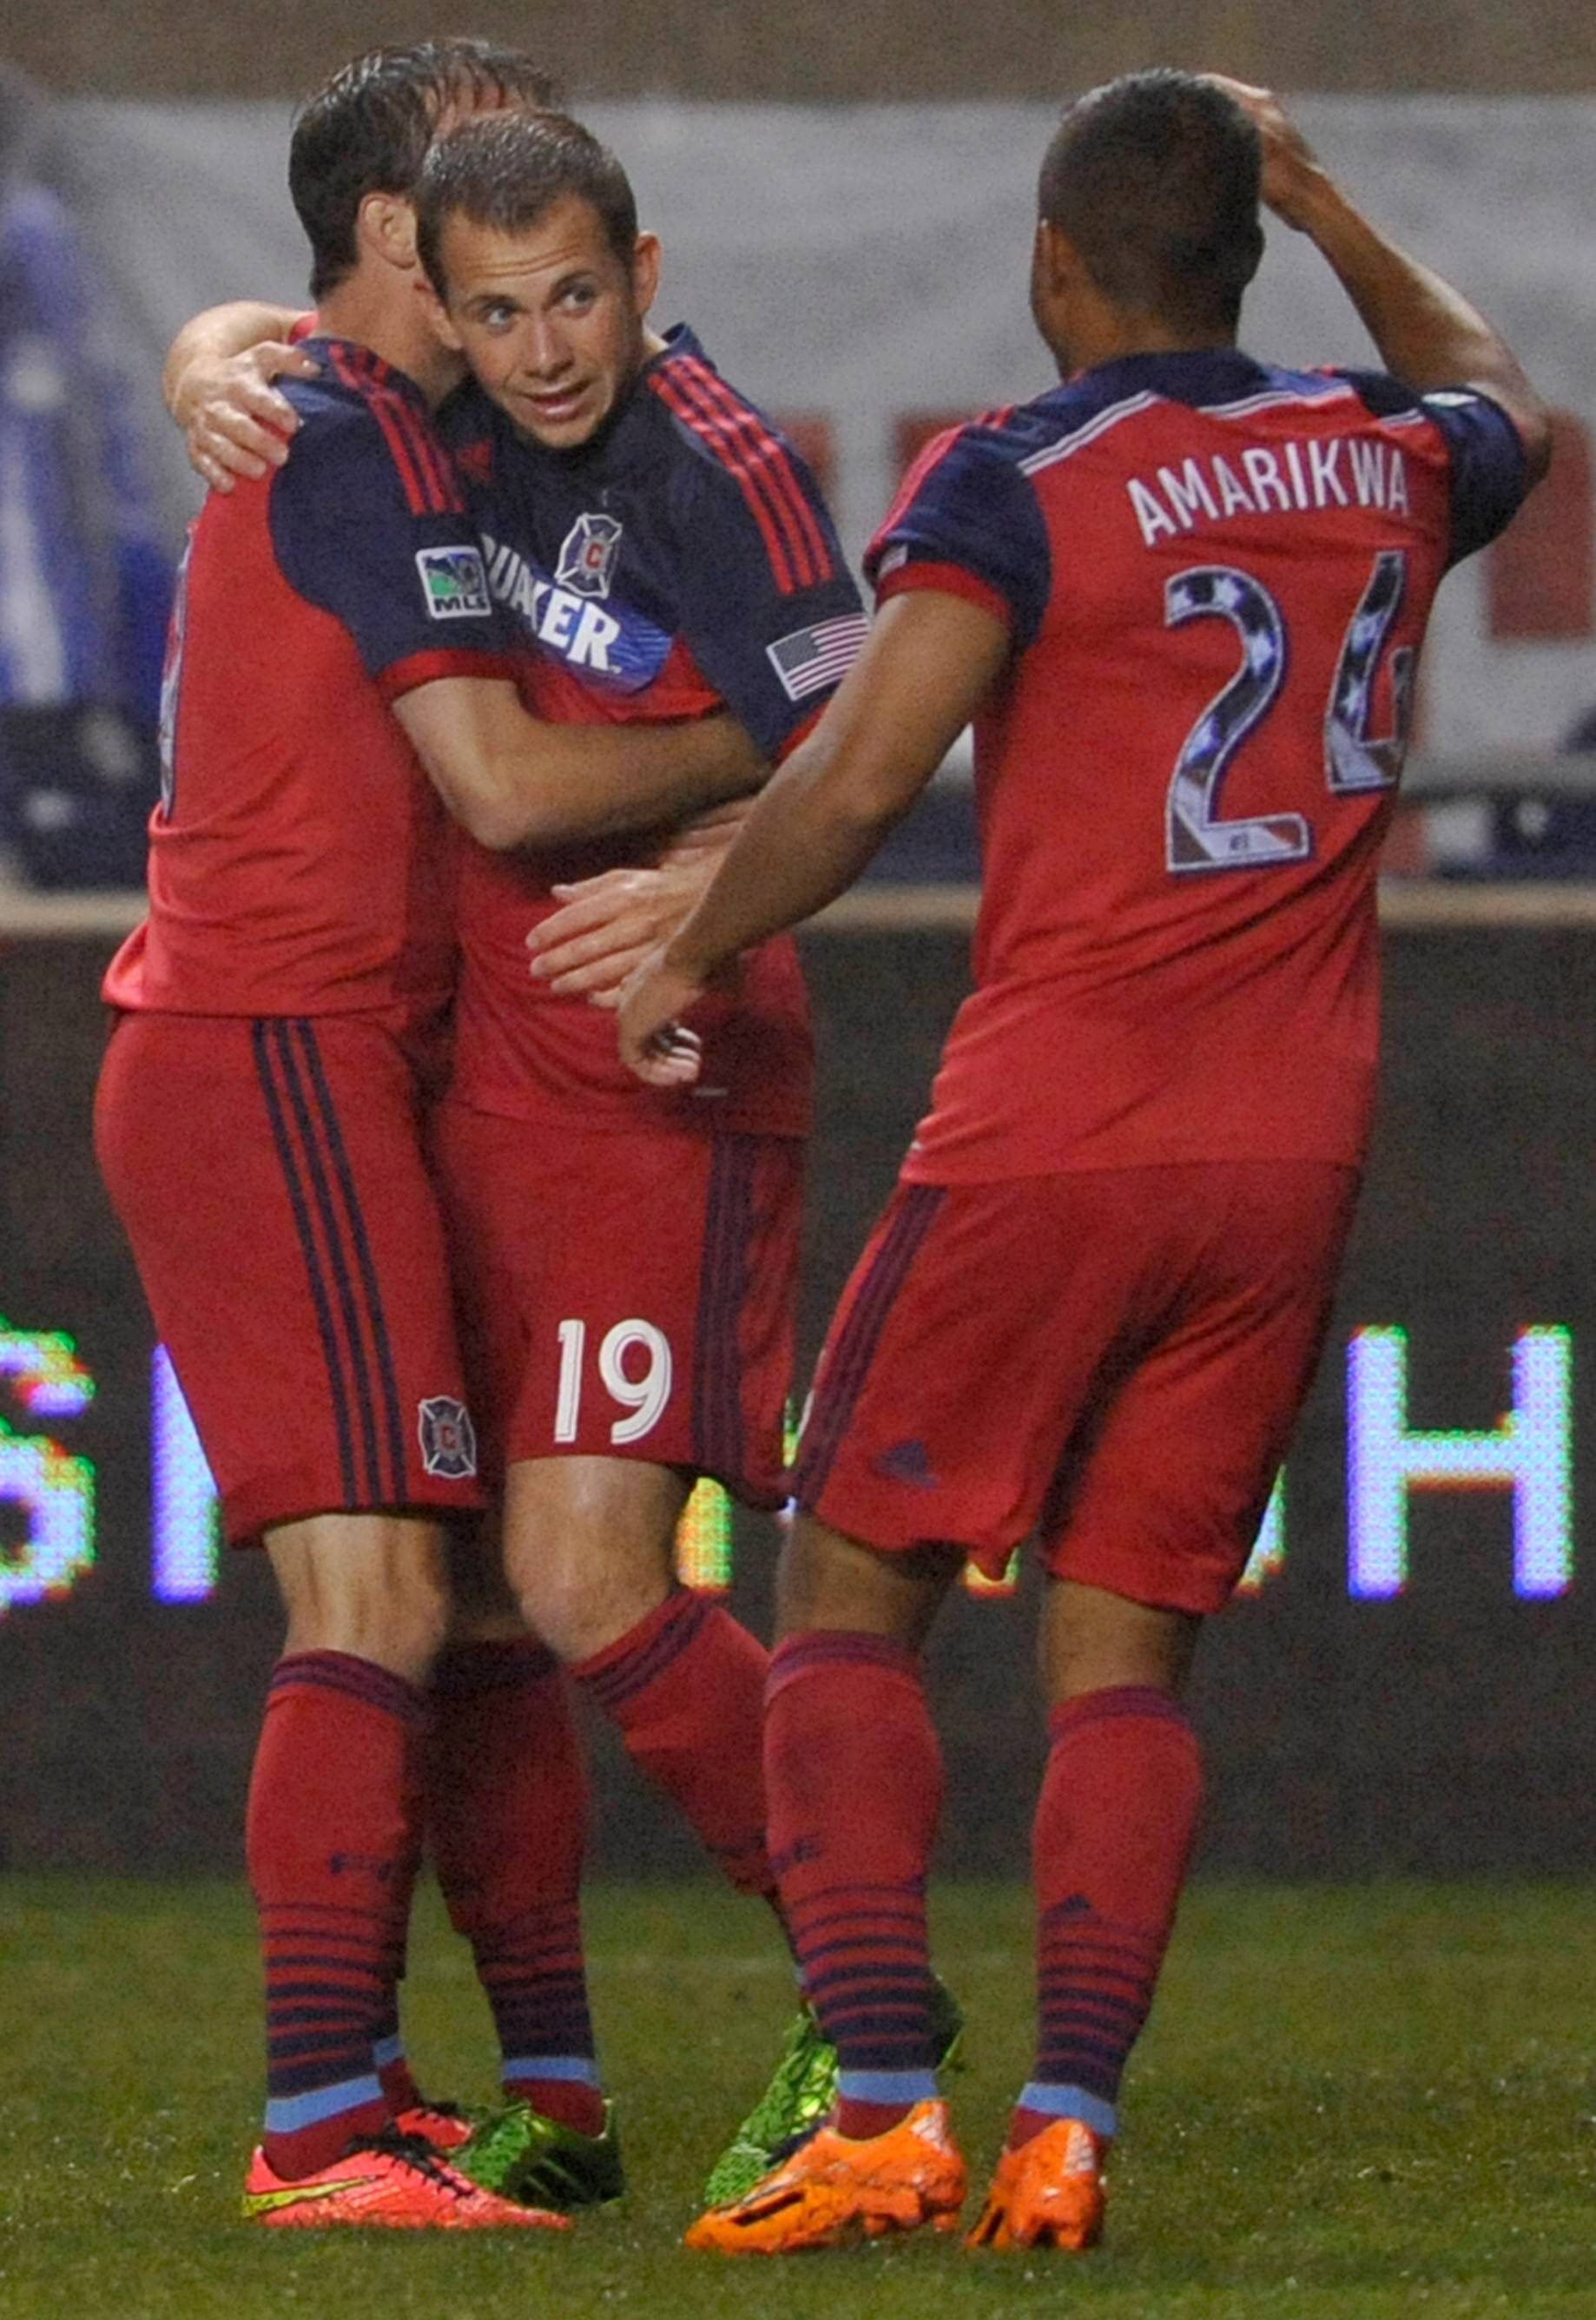 With the Fire's defense rounding into shape, a little more offensive scoring, led by Harry Shipp (19), Mike Magee, left, and Quincy Amarika (24), would boost the club's chances to earn a playoff spot this season.